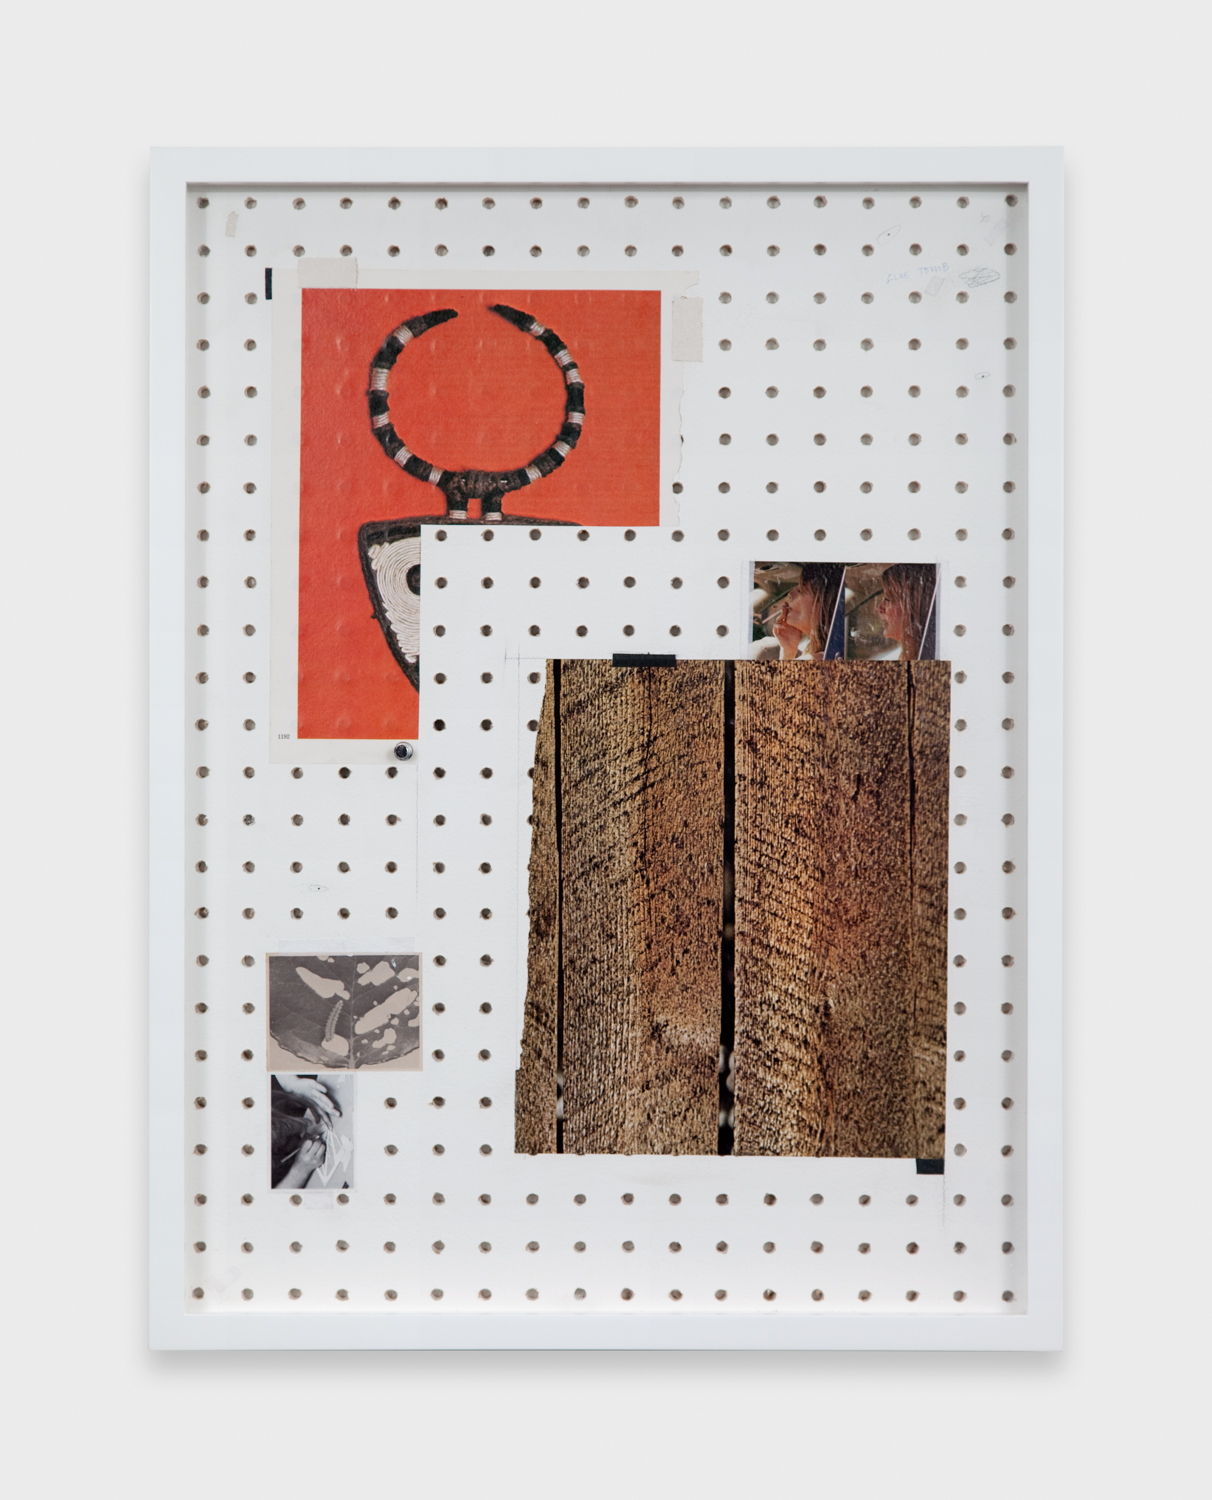 Amanda Ross-Ho  Untitled Still Life (Trees)  2011 Hand-drilled sheetrock, latex paint, graphite, ballpoint pen, found images, linen tape, book tape 24h x 18w in ARH003